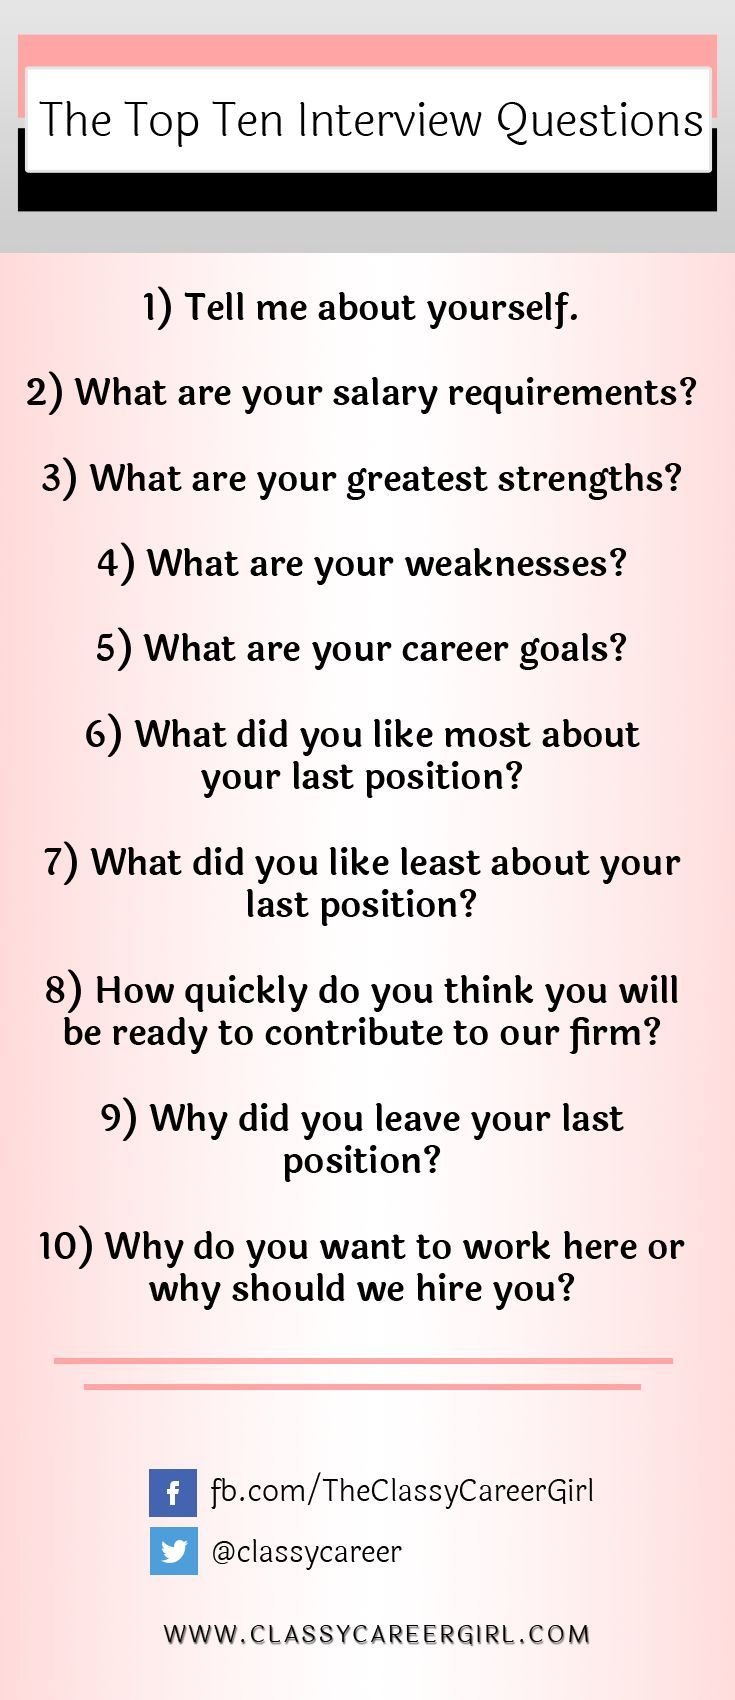 behavioral interview questions and answers infographic home behavioral interview questions and answers infographic home resume tips and interview